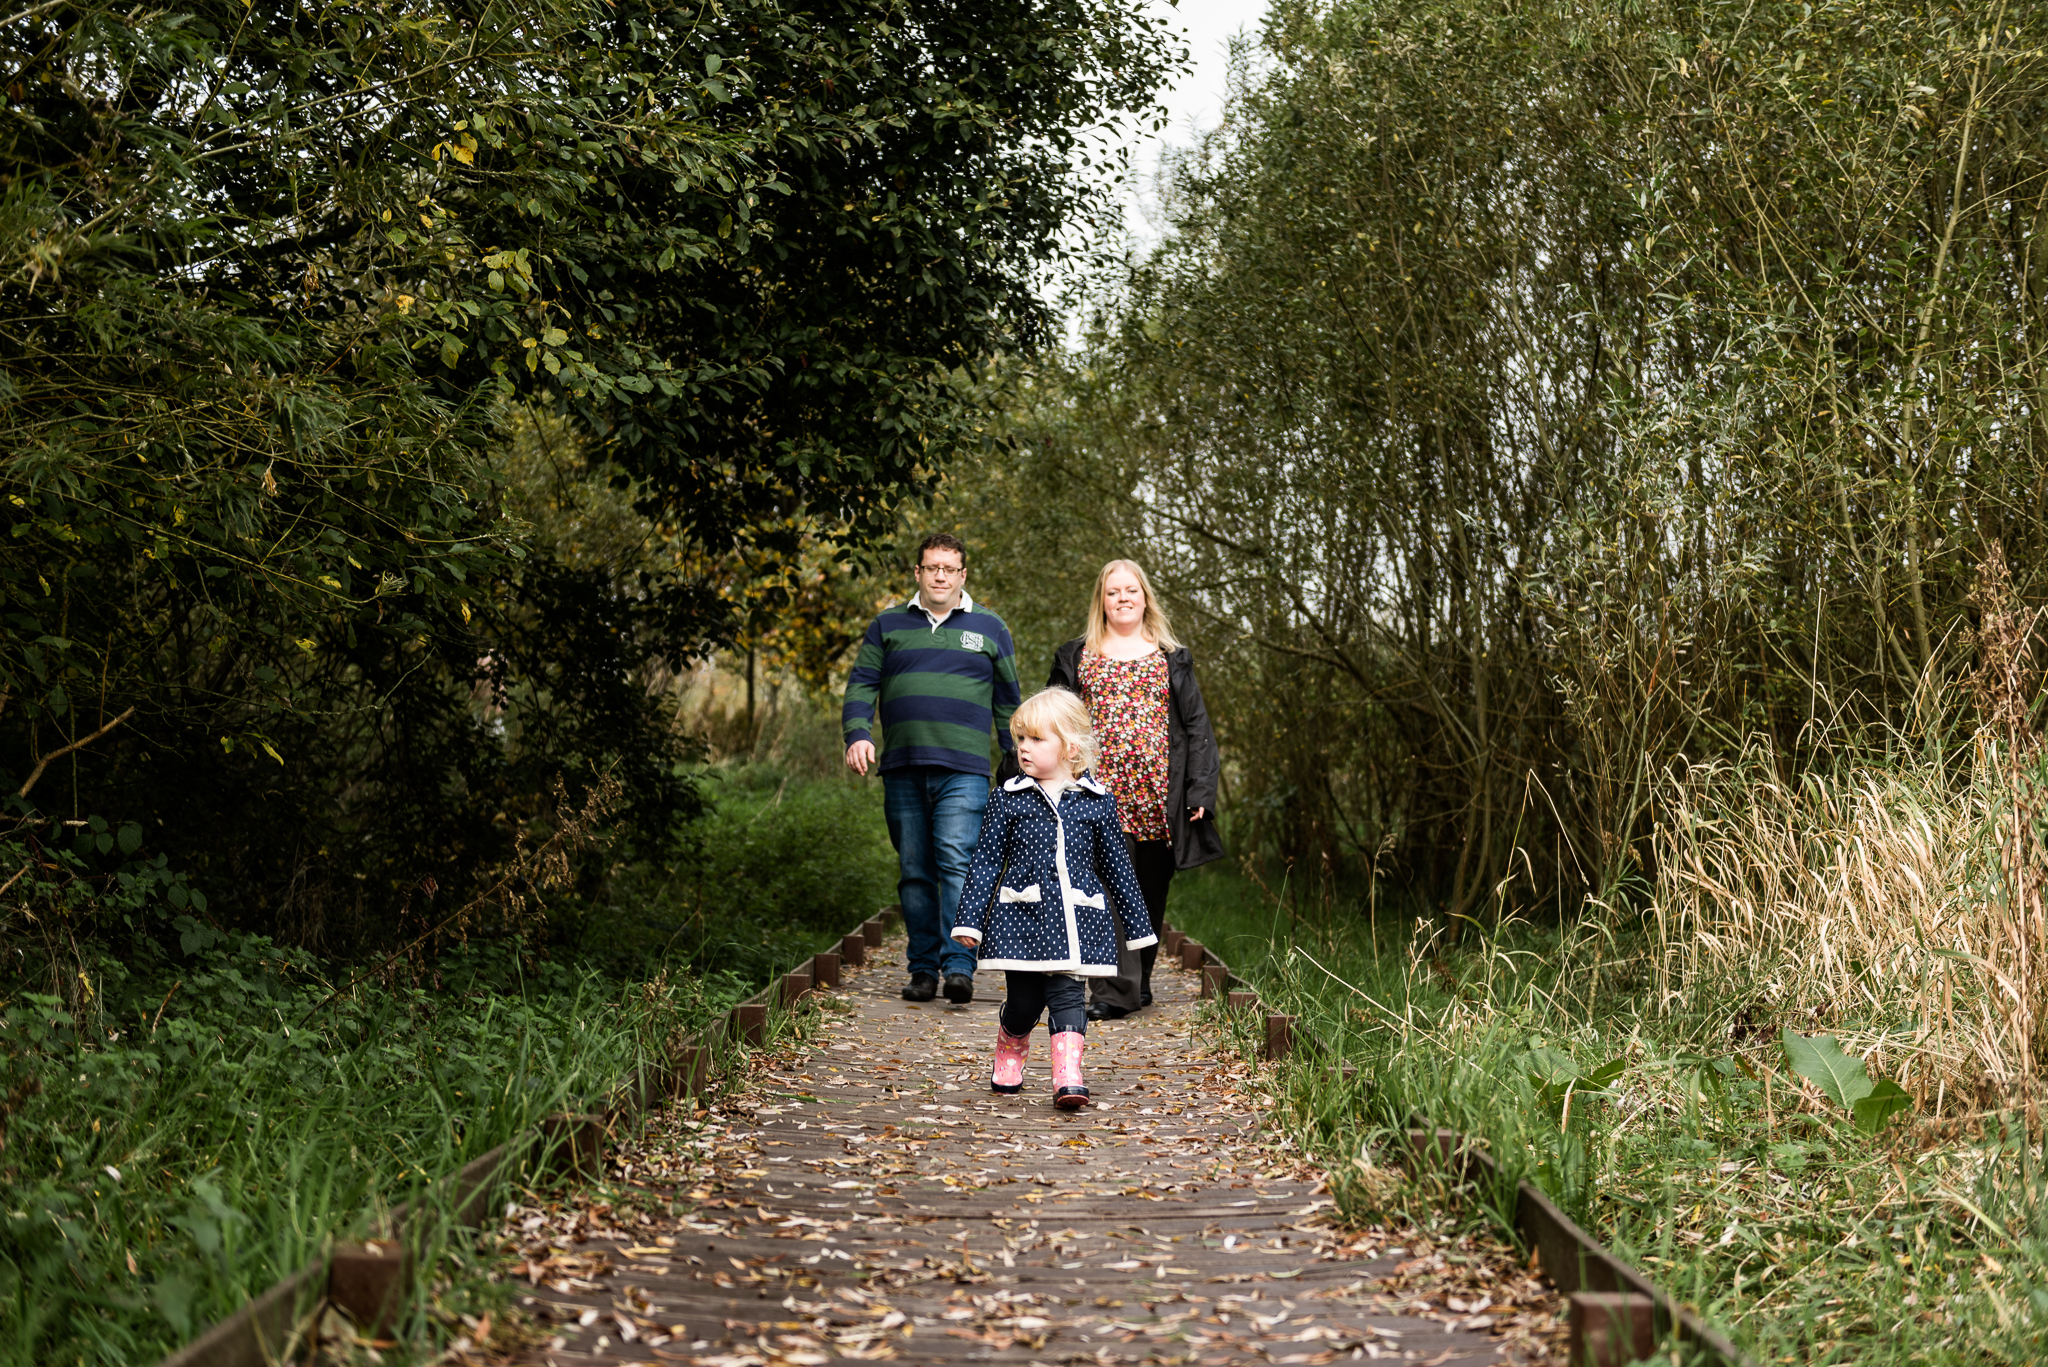 Staffordshire Documentary Family Photography Autumn Lifestyle Fall Leaves - Jenny Harper-11.jpg